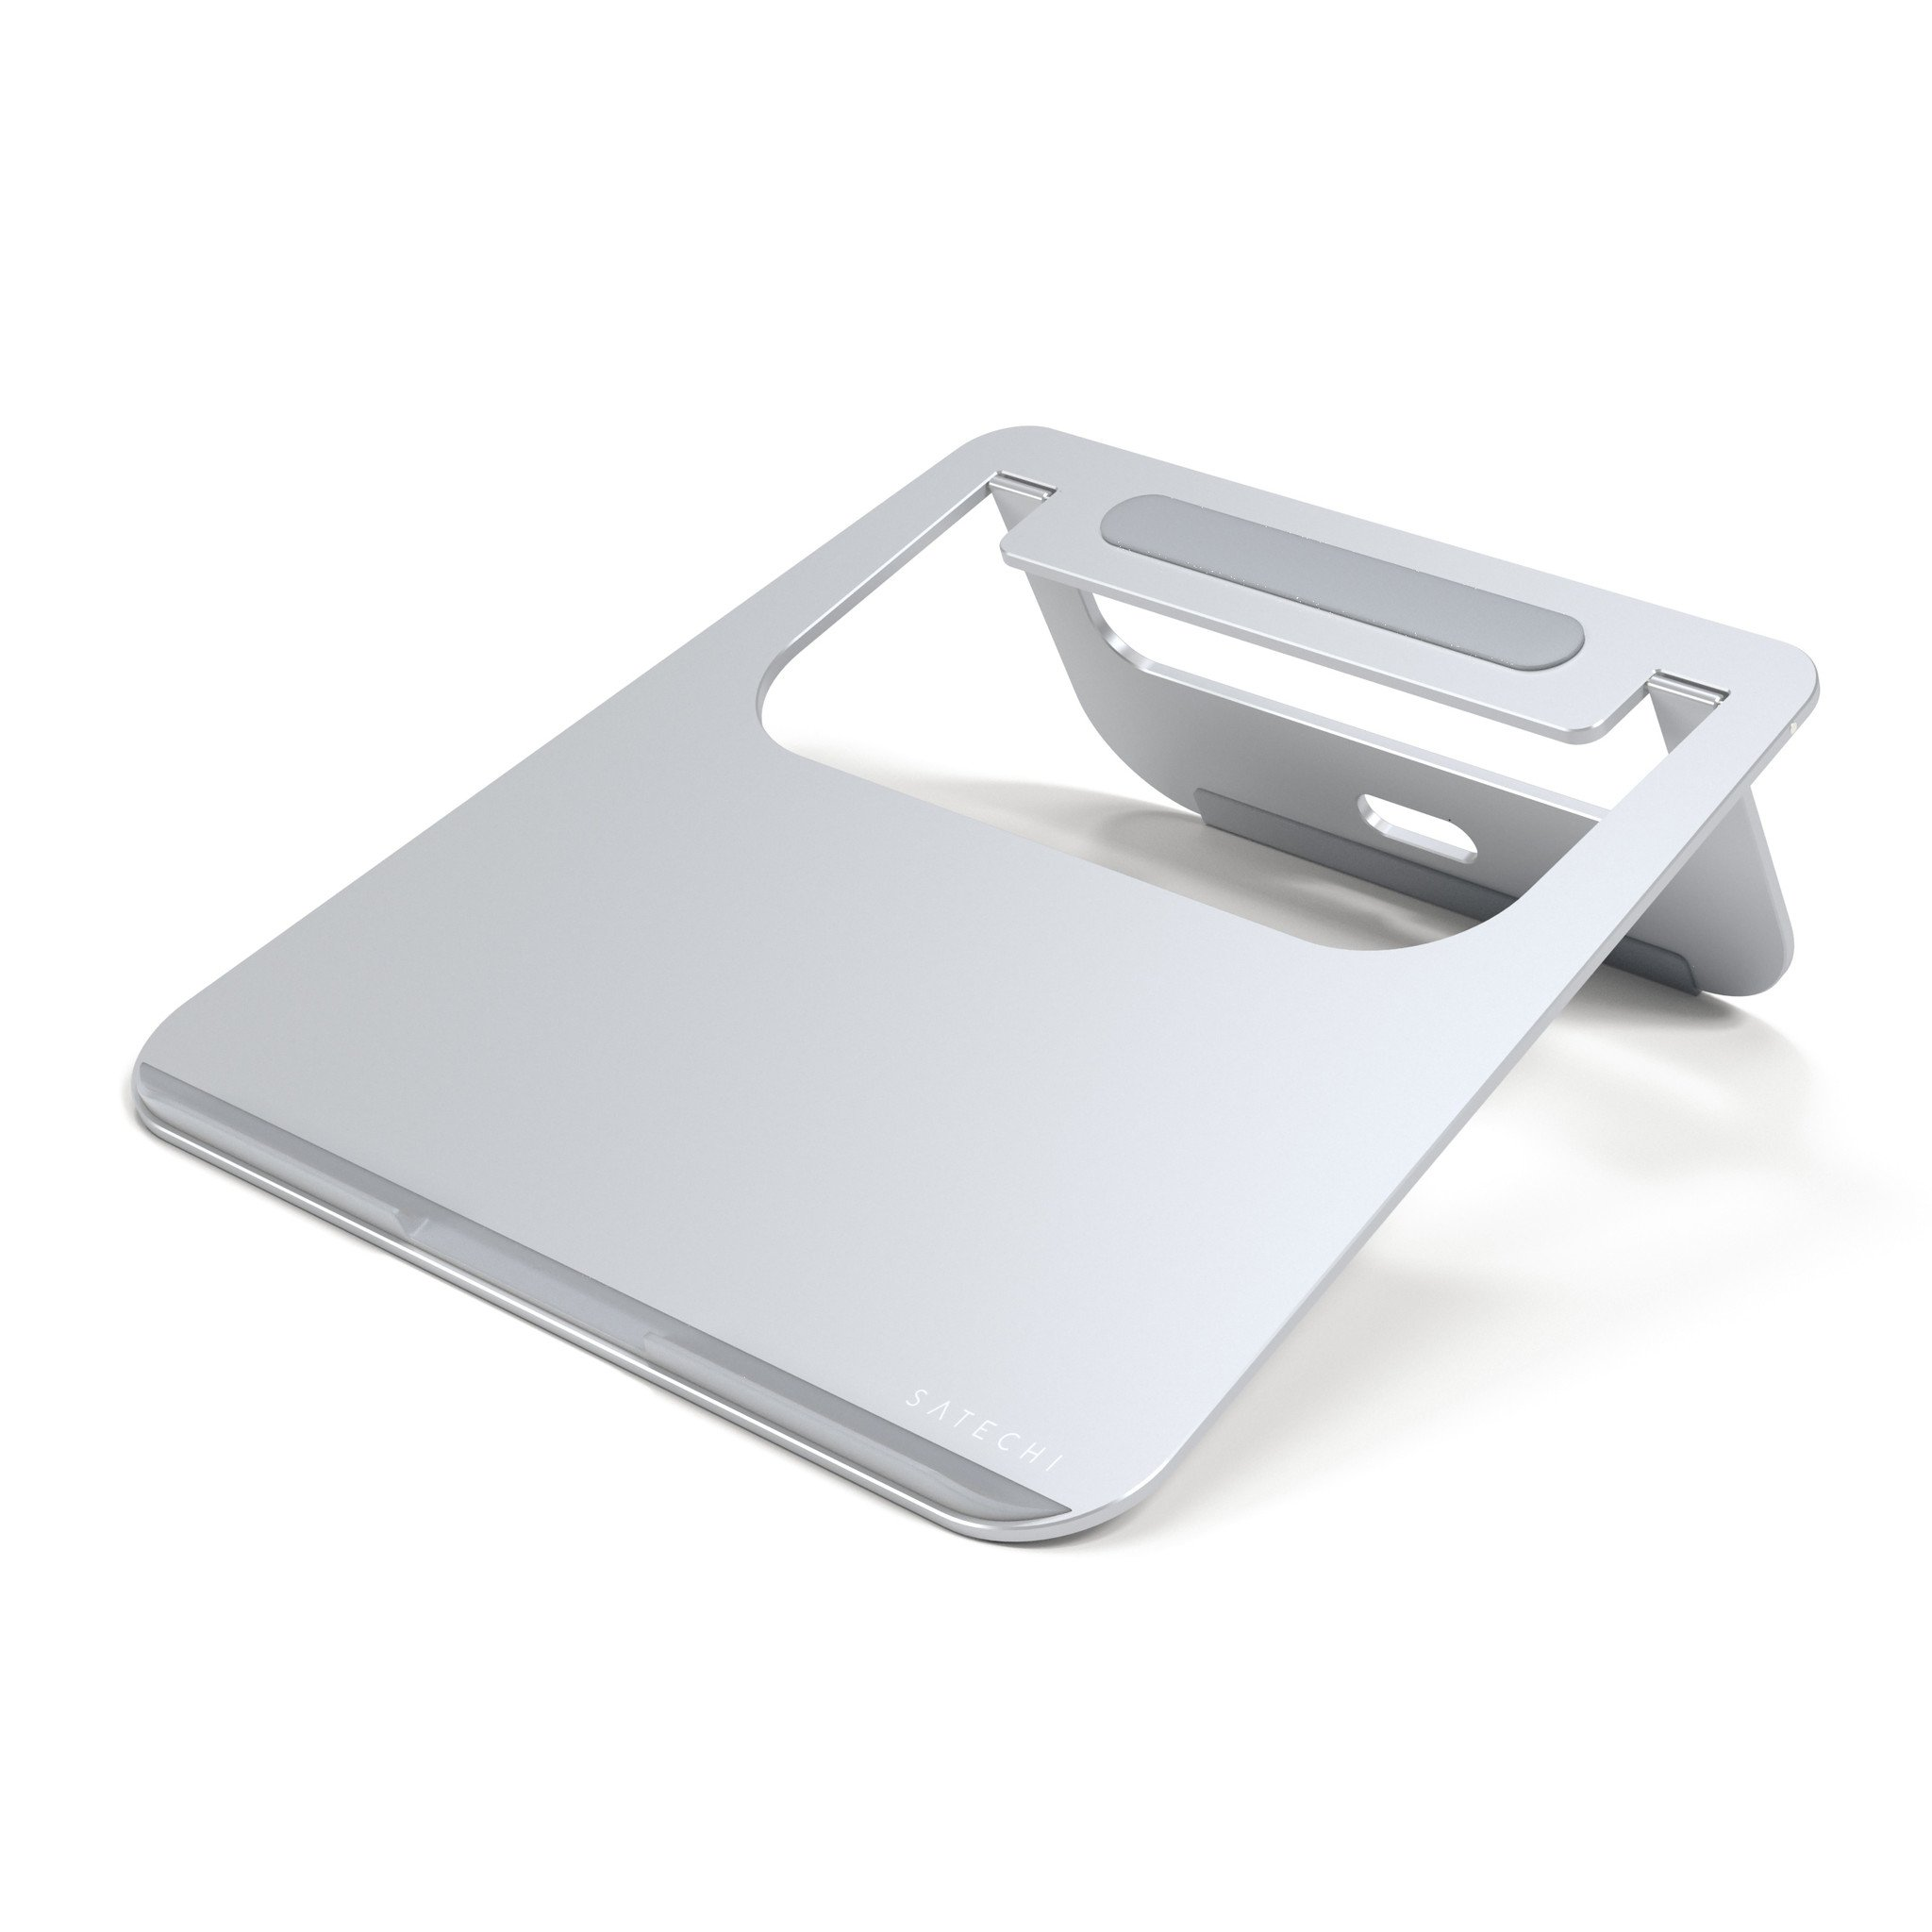 Aluminum Portable Laptop Stand For Mac Silver ST-ALTSS image